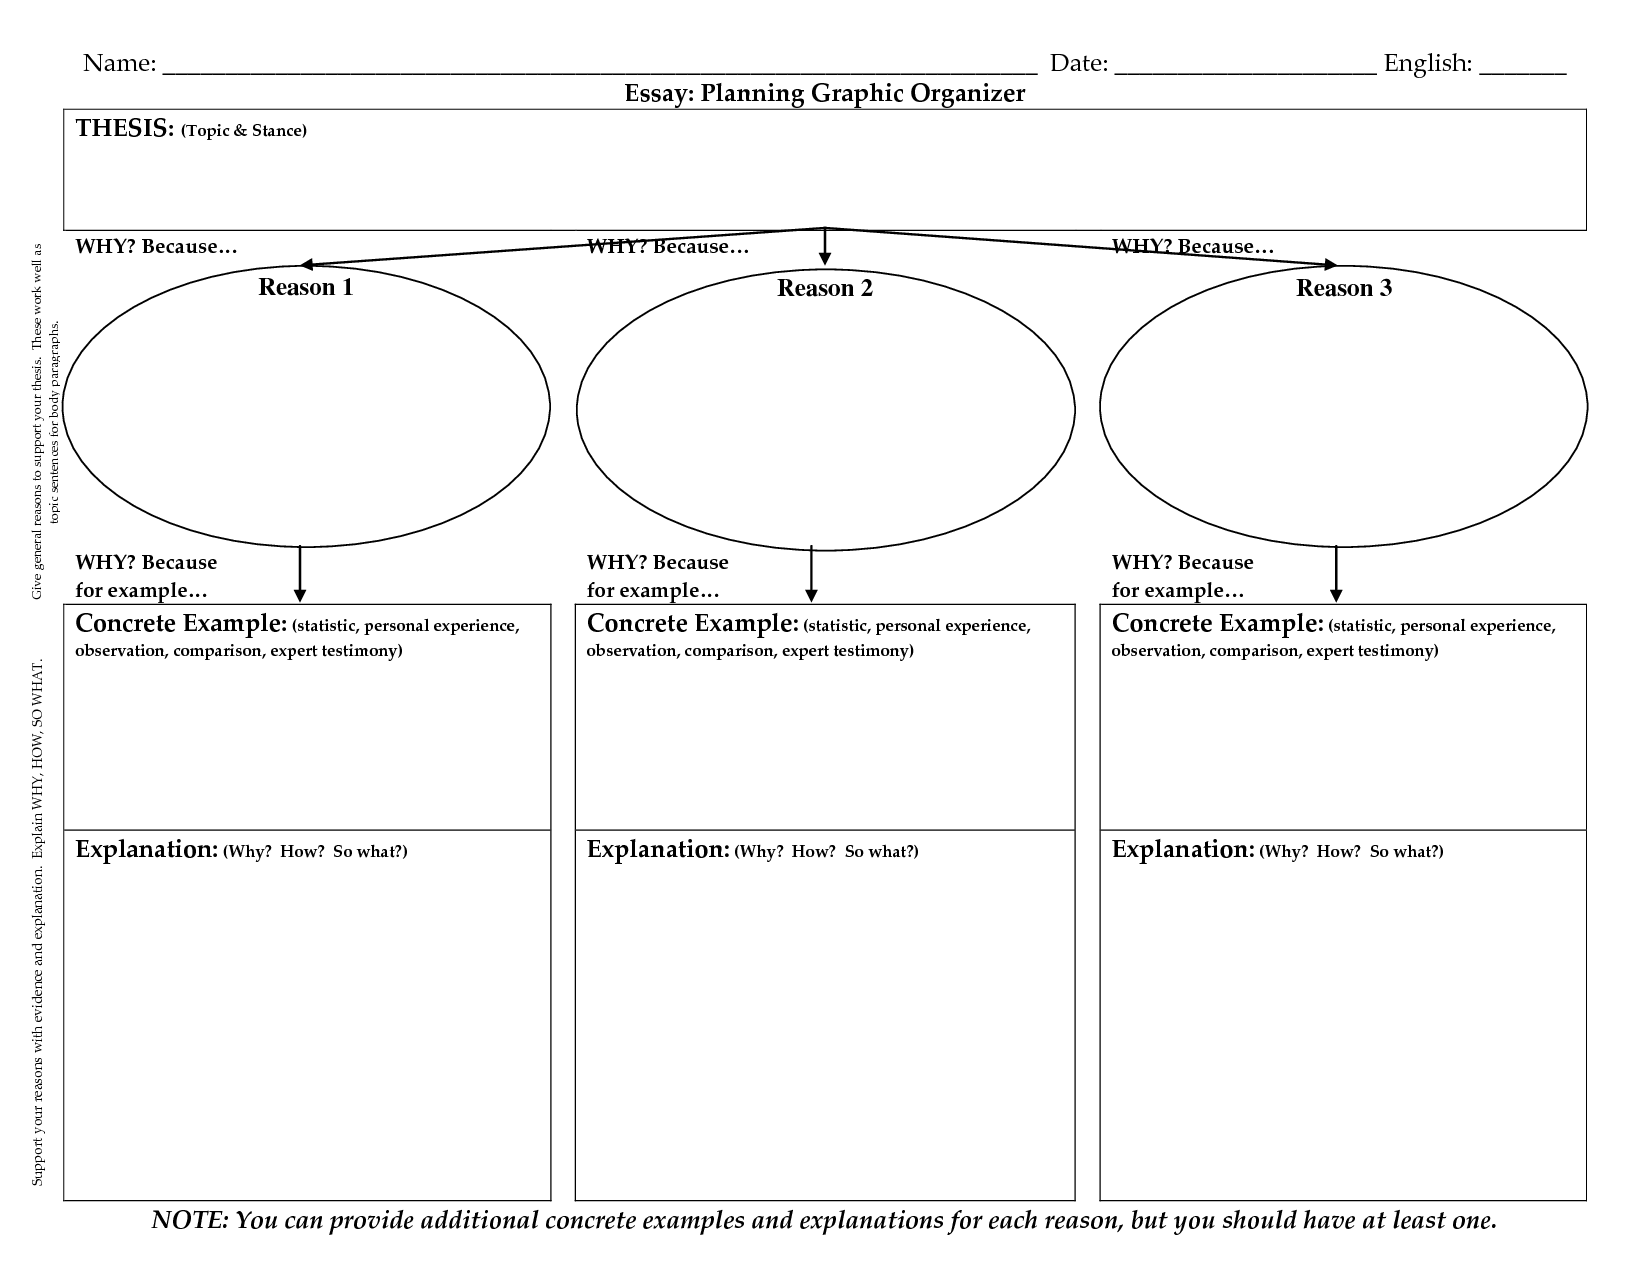 Persuasive writing essay graphic organizer